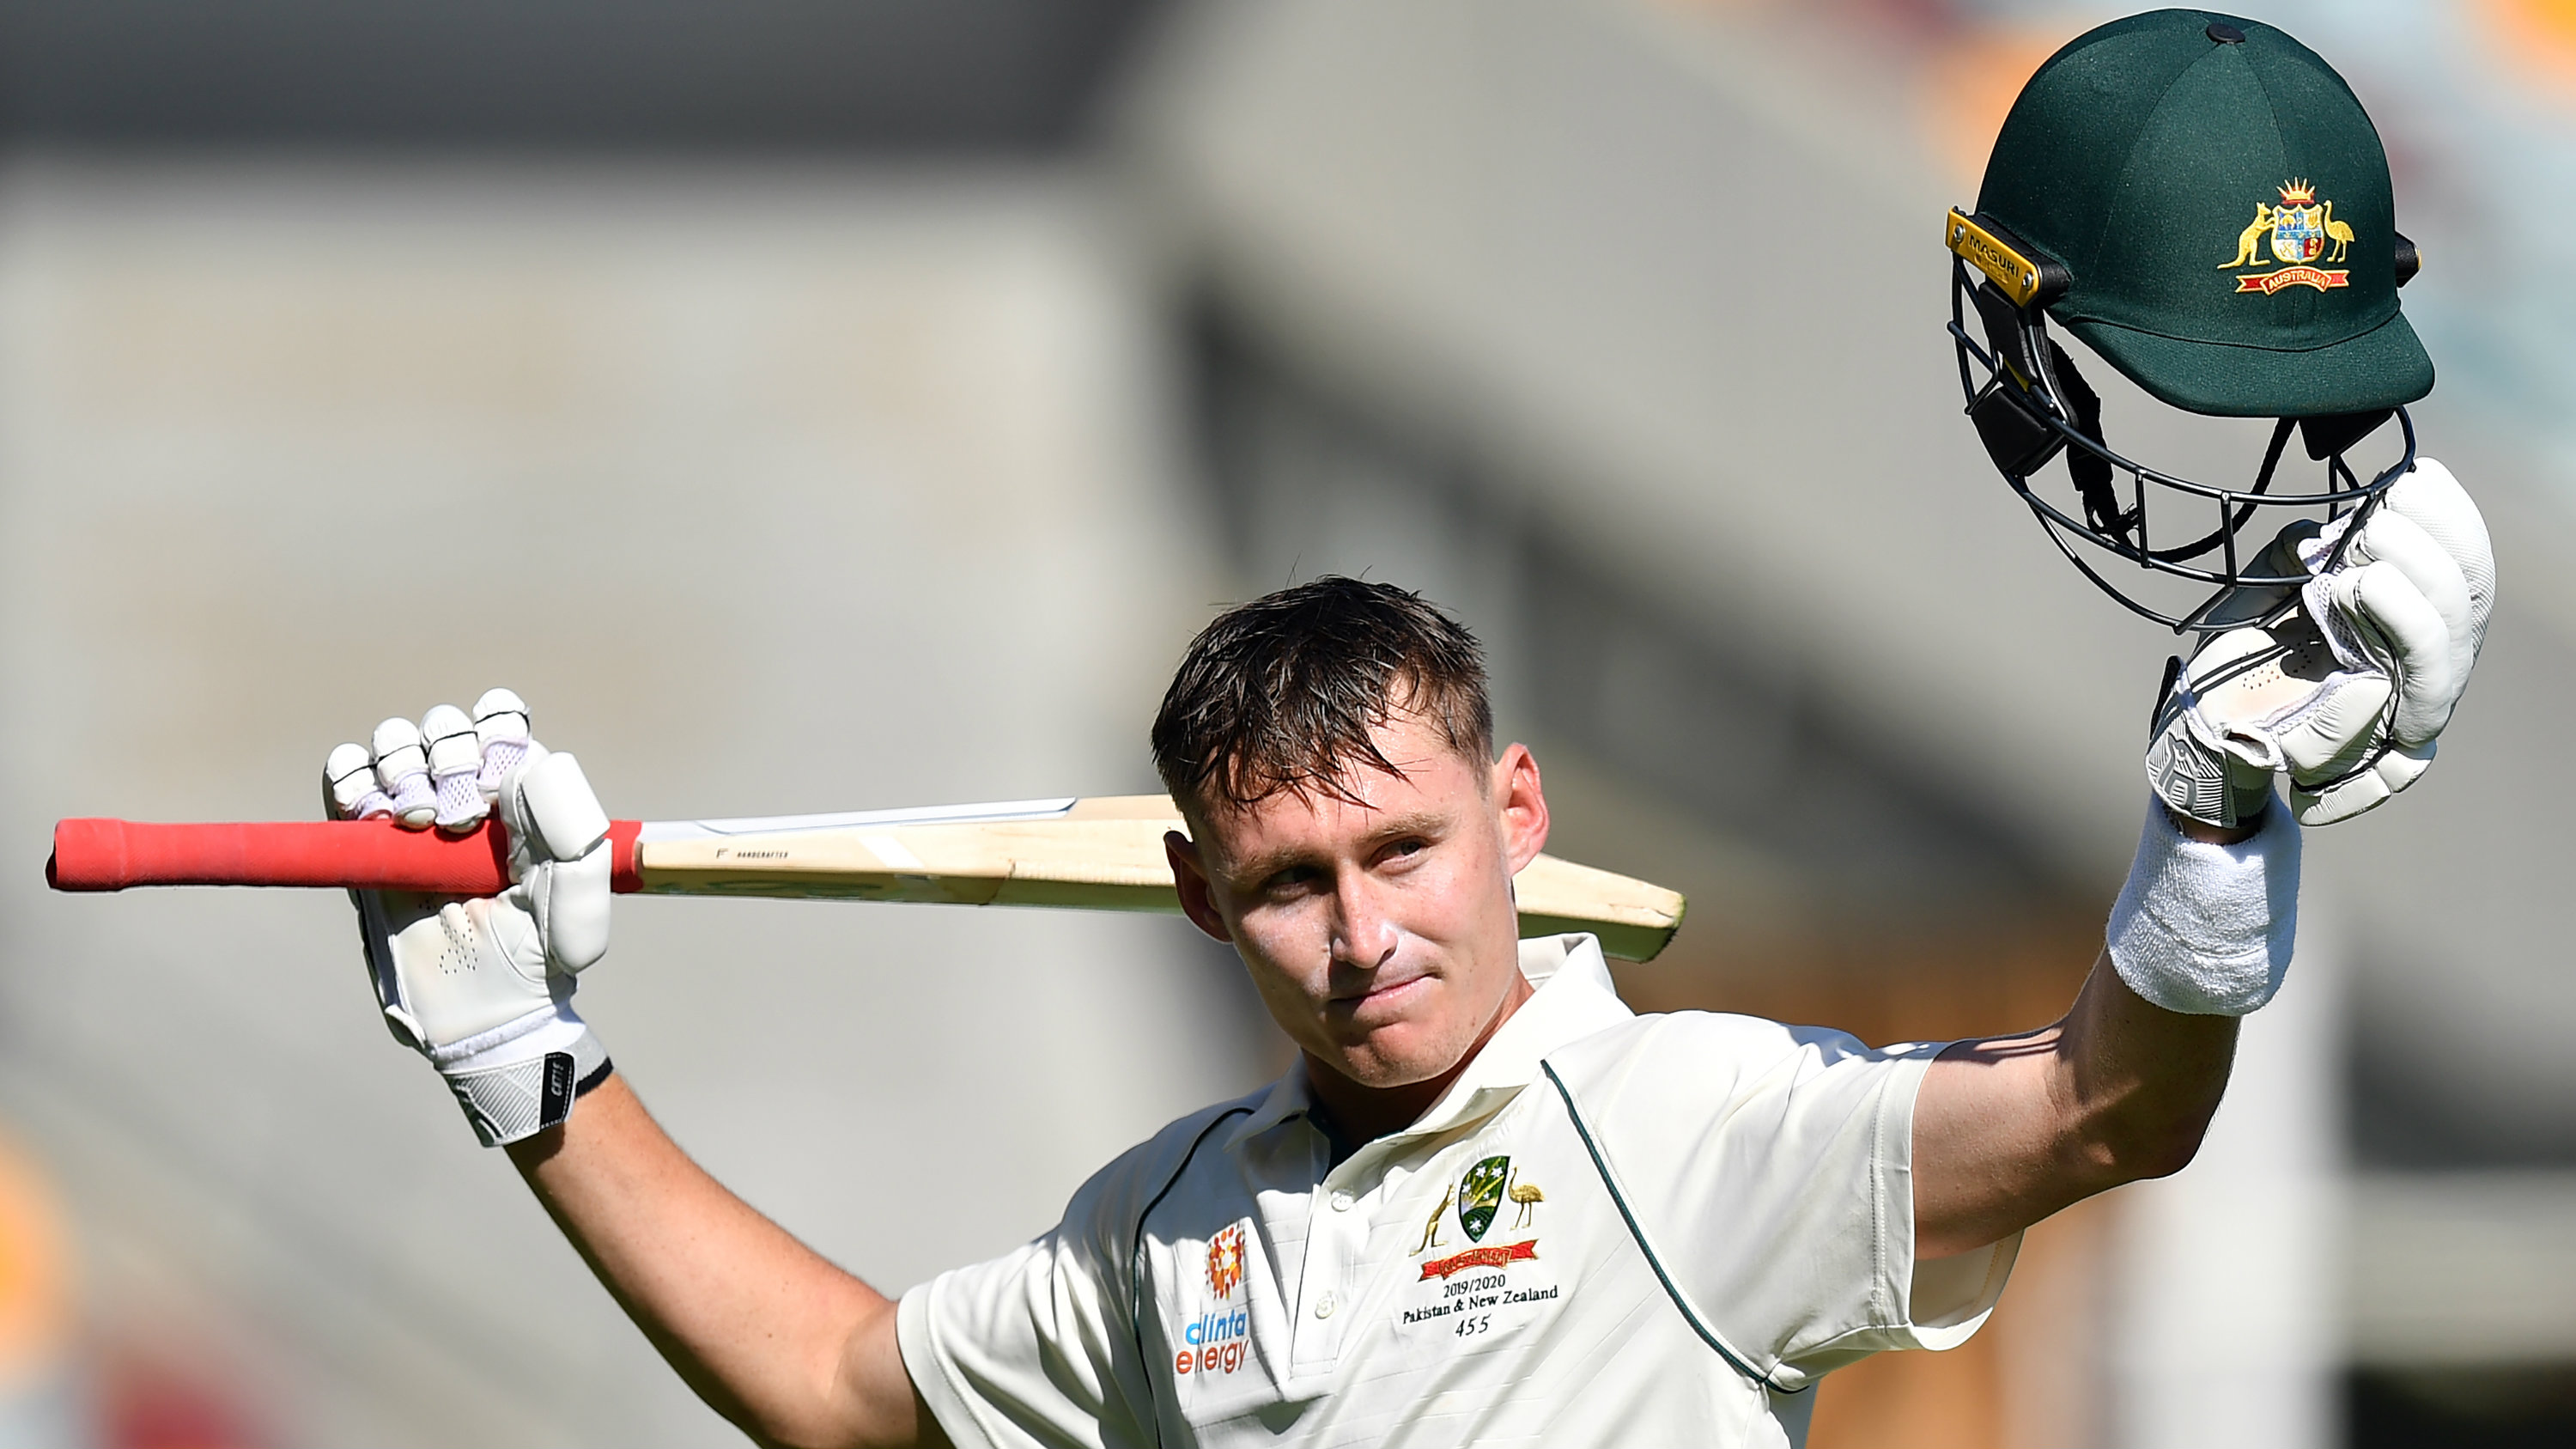 Jason 'Dizzy' Gillepsie welcomes Marnus Labuschagne into 200 club with hilarious letter